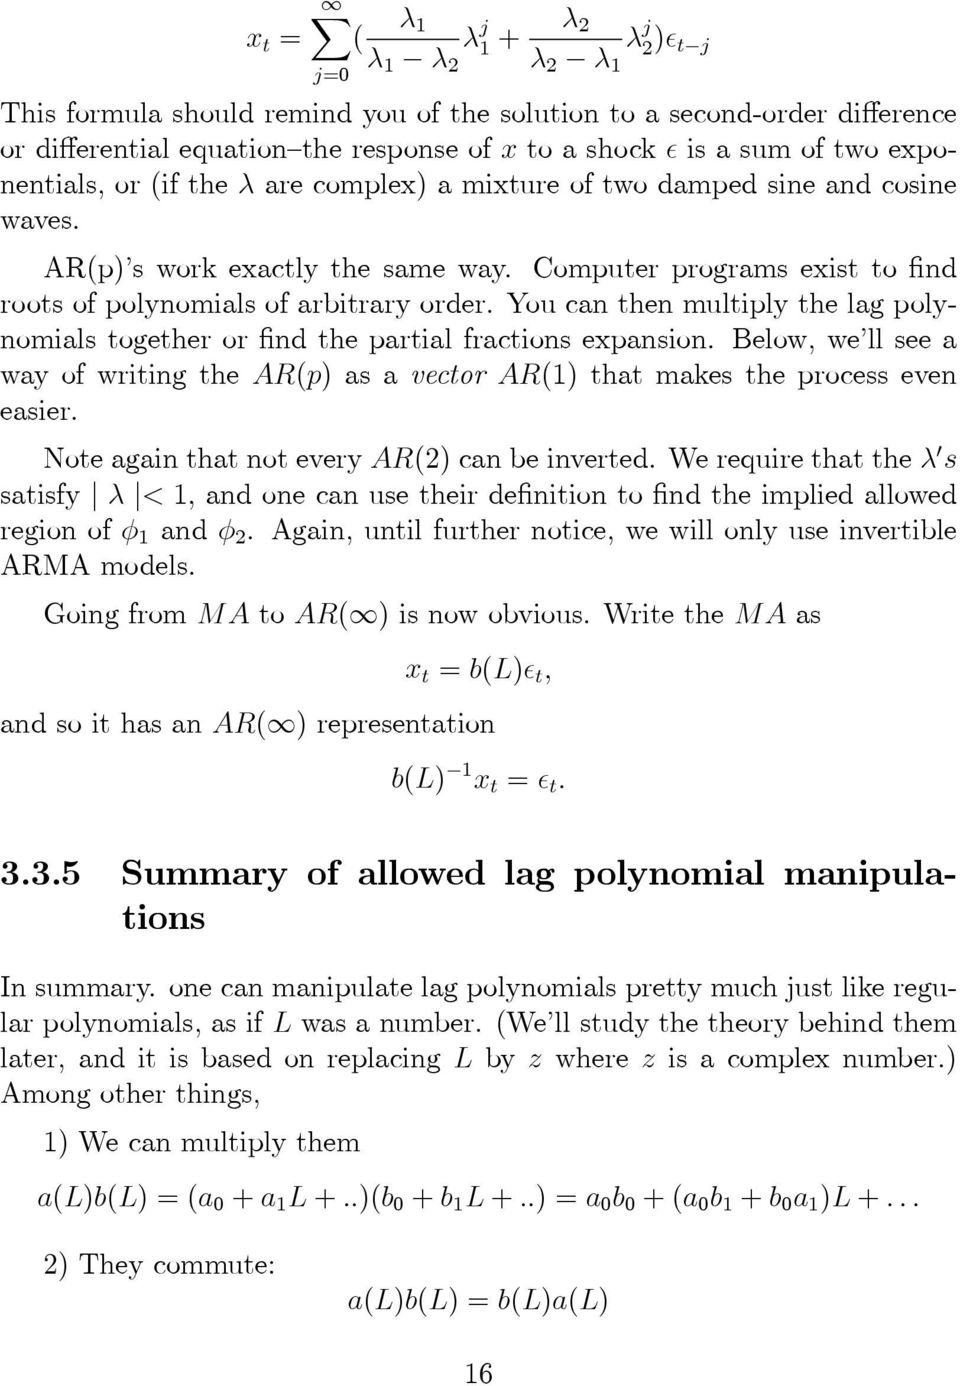 Computer programs exist to find roots of polynomials of arbitrary order. You can then multiply the lag polynomials together or find the partial fractions expansion.